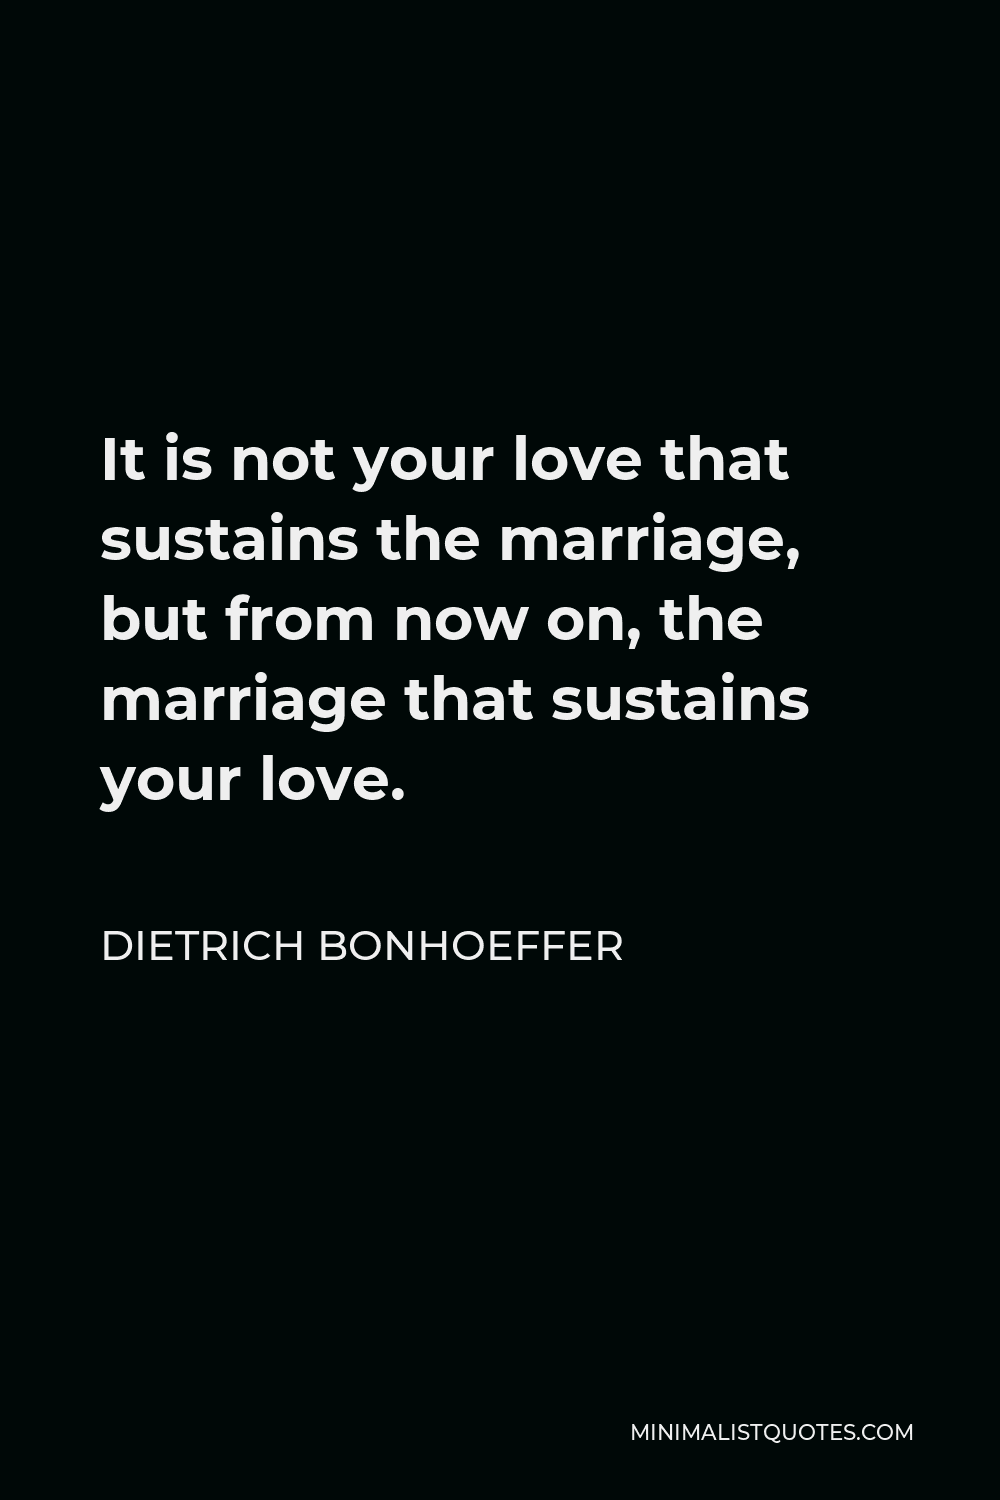 Dietrich Bonhoeffer Quote - It is not your love that sustains the marriage, but from now on, the marriage that sustains your love.